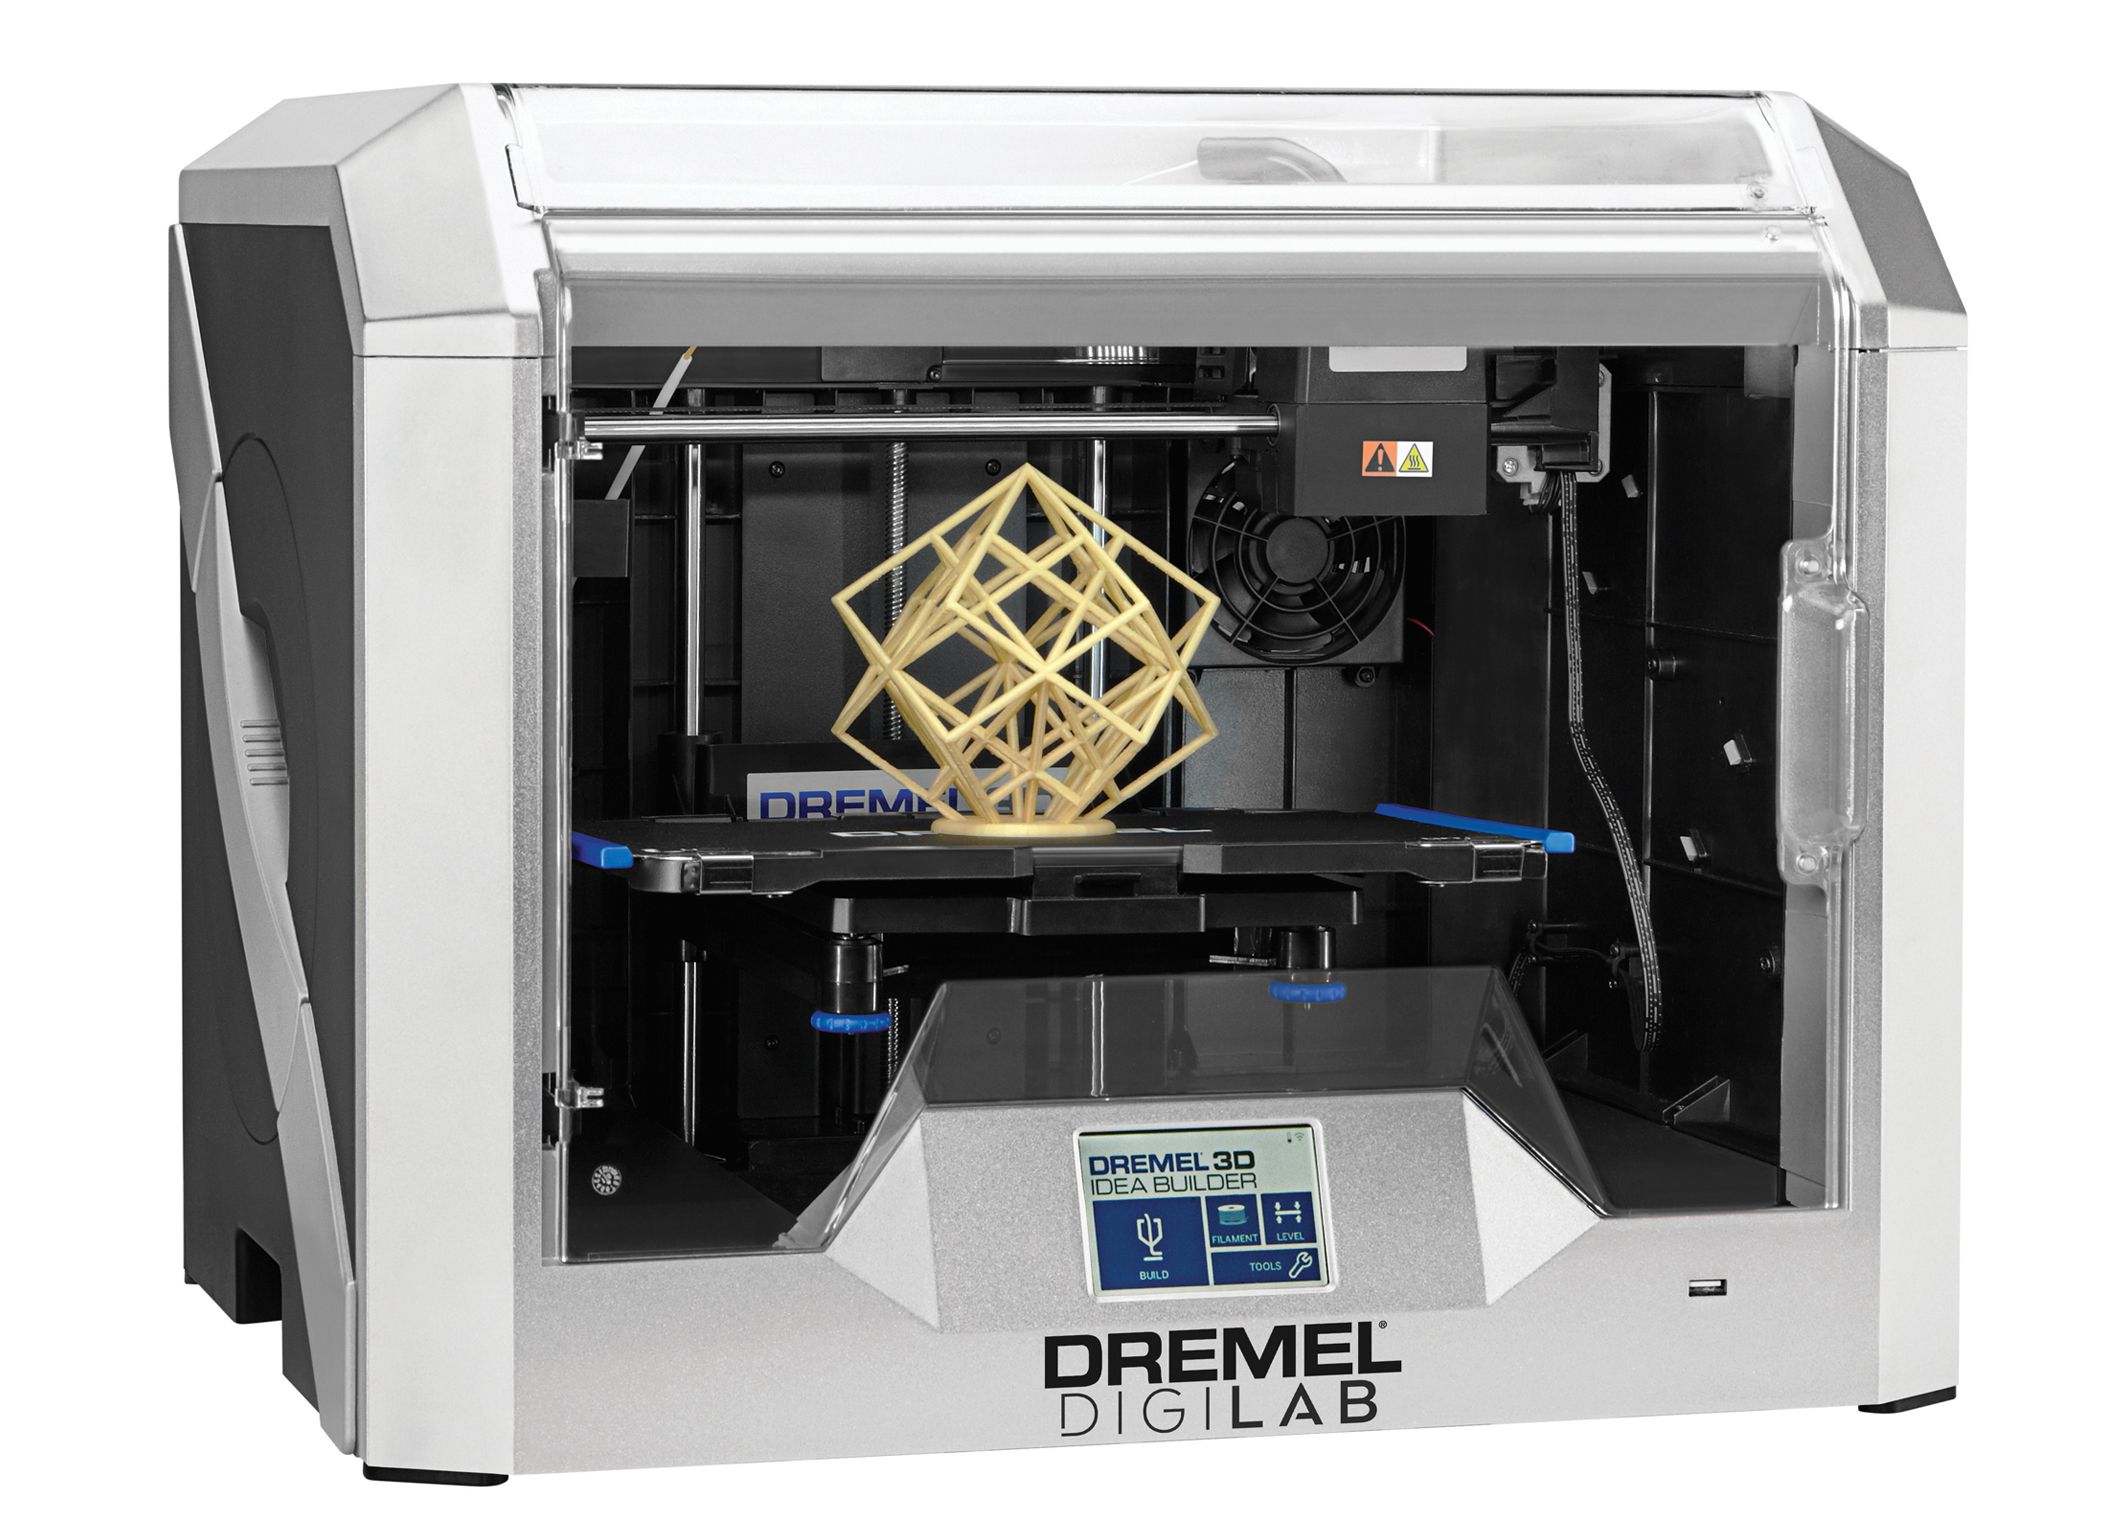 Print removal easier than ever: New Dremel DigiLab 3D40 Flex